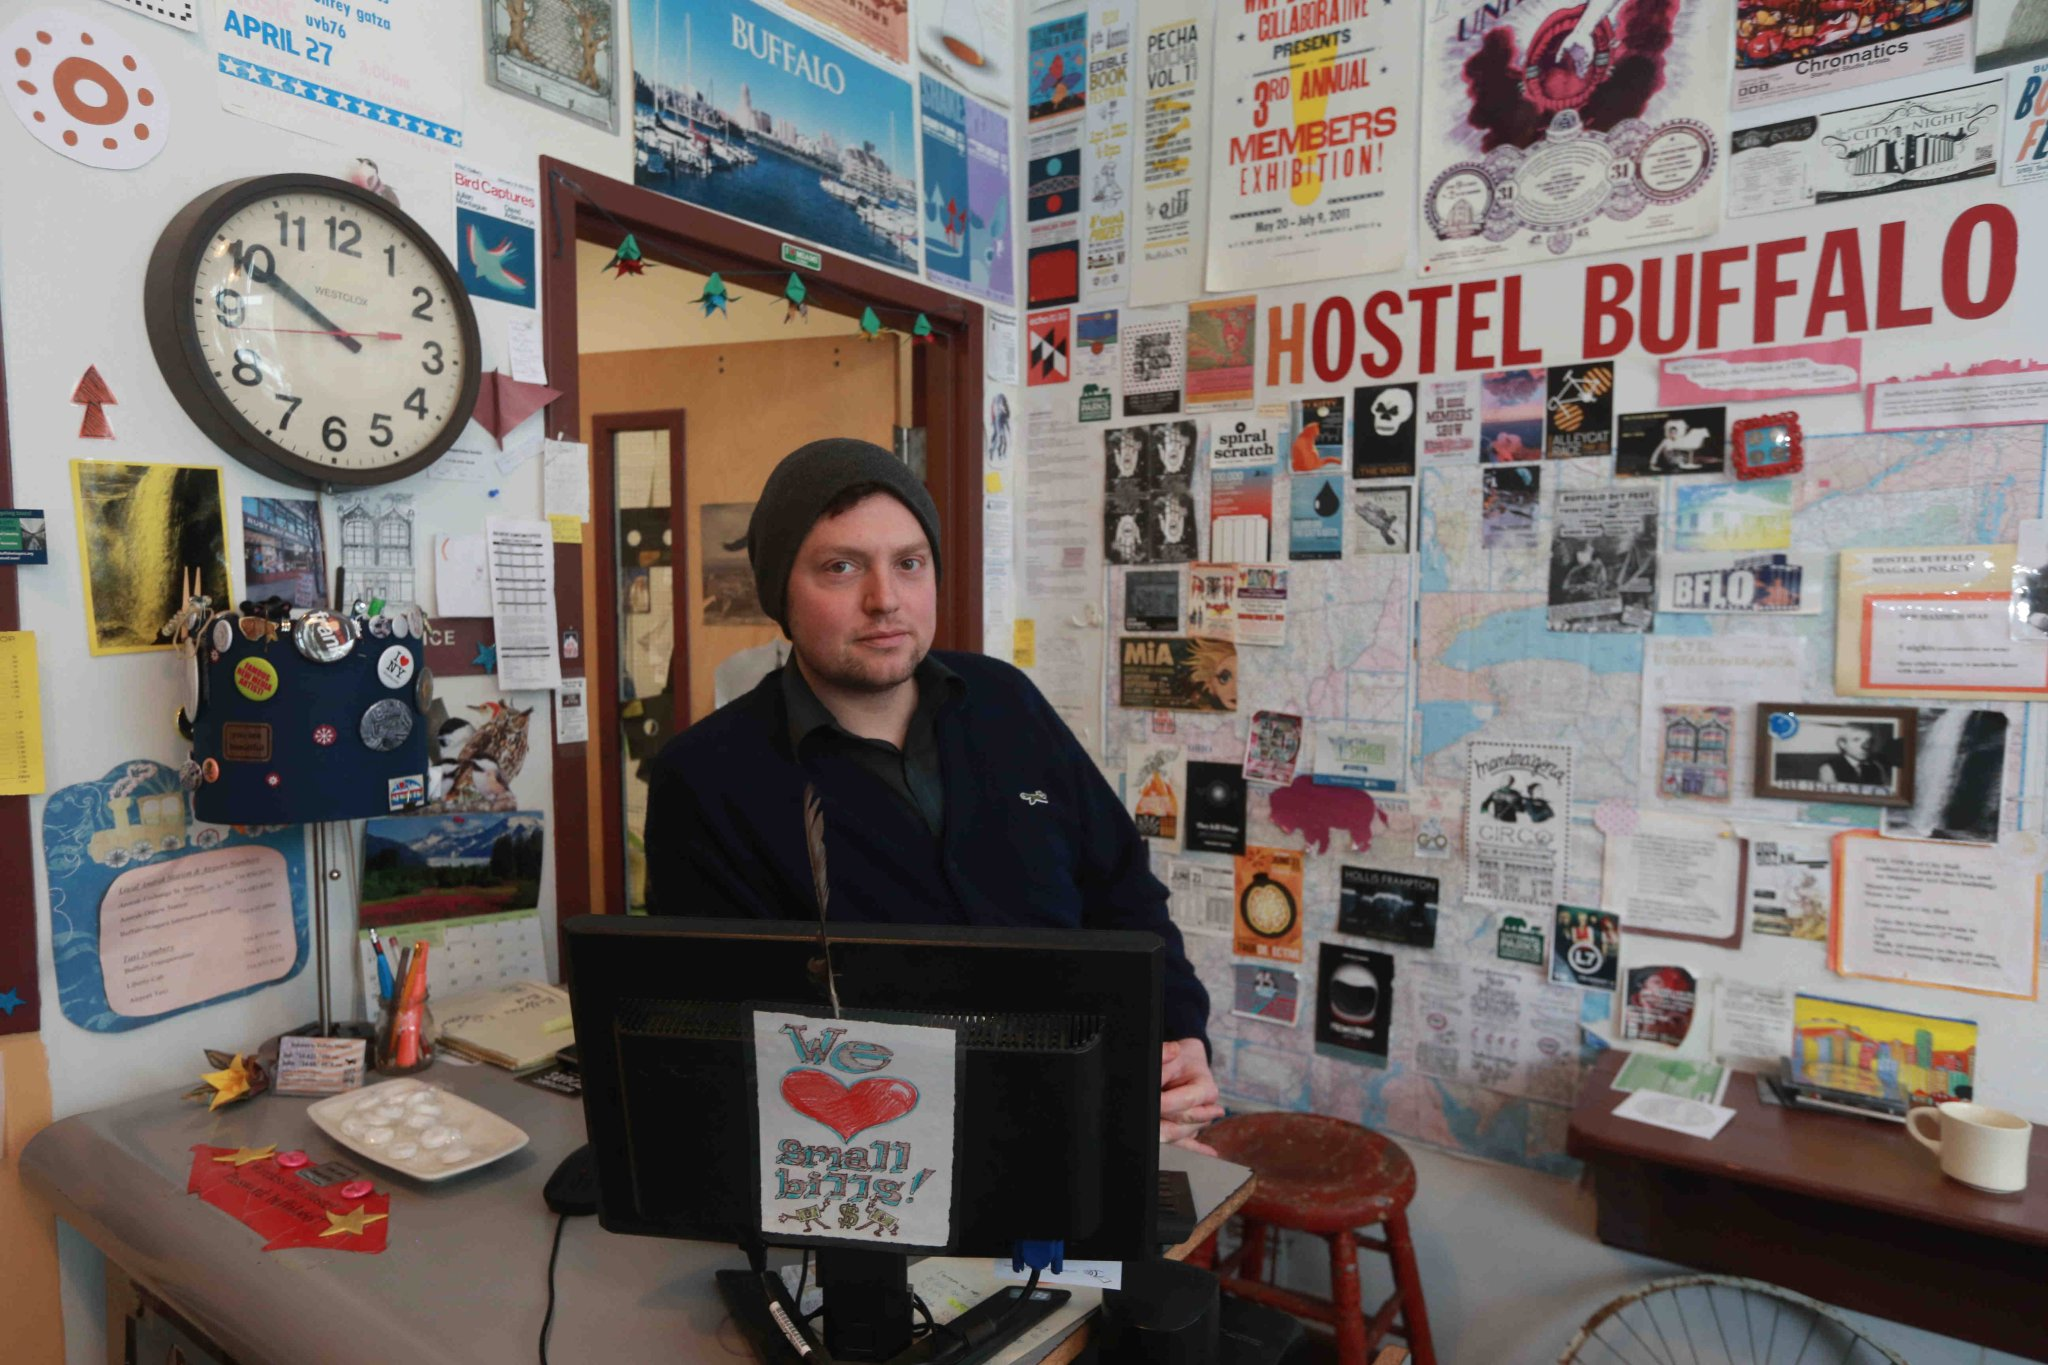 Jonathan Piret, manager at the front desk of the Buffalo Hostel, in Theater District, in Buffalo, N.Y. (John Hickey/Buffalo News)